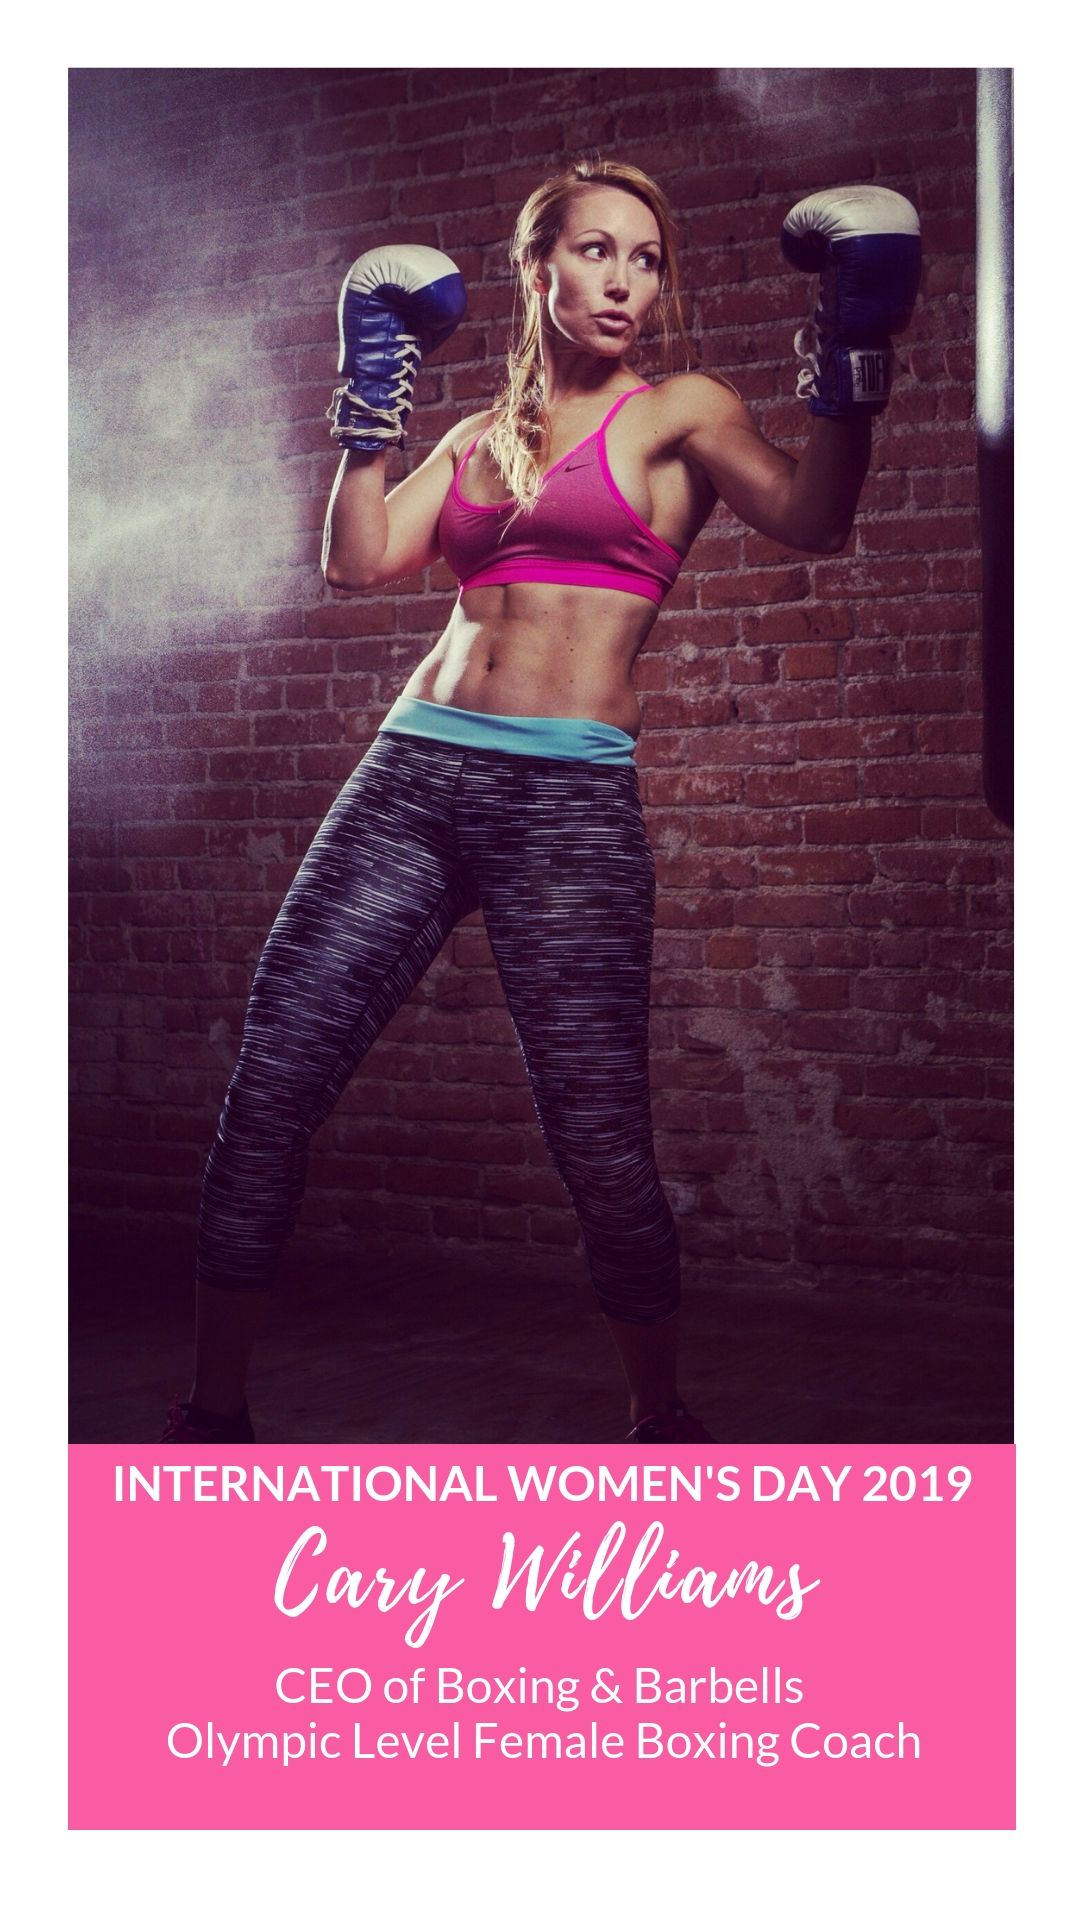 International Women's Day - Cary Williams